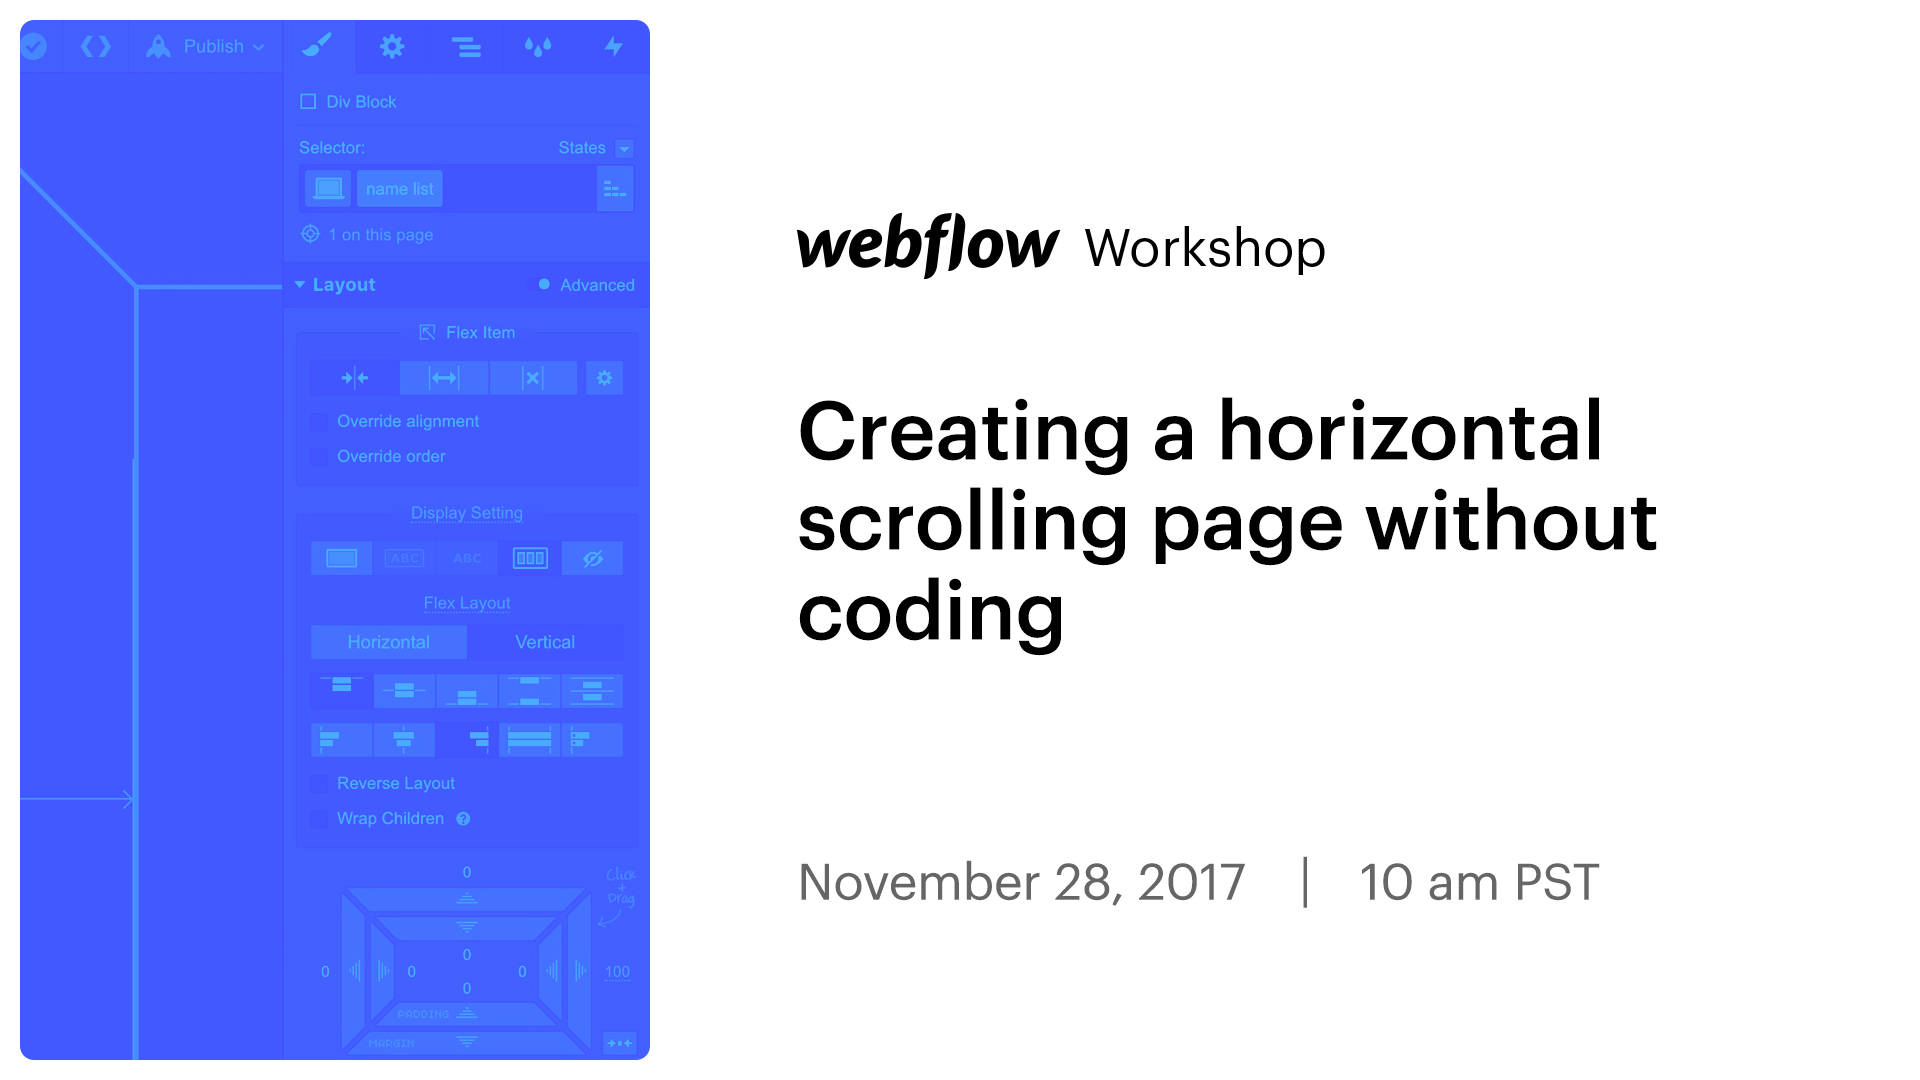 Creating a horizontal scrolling page without coding